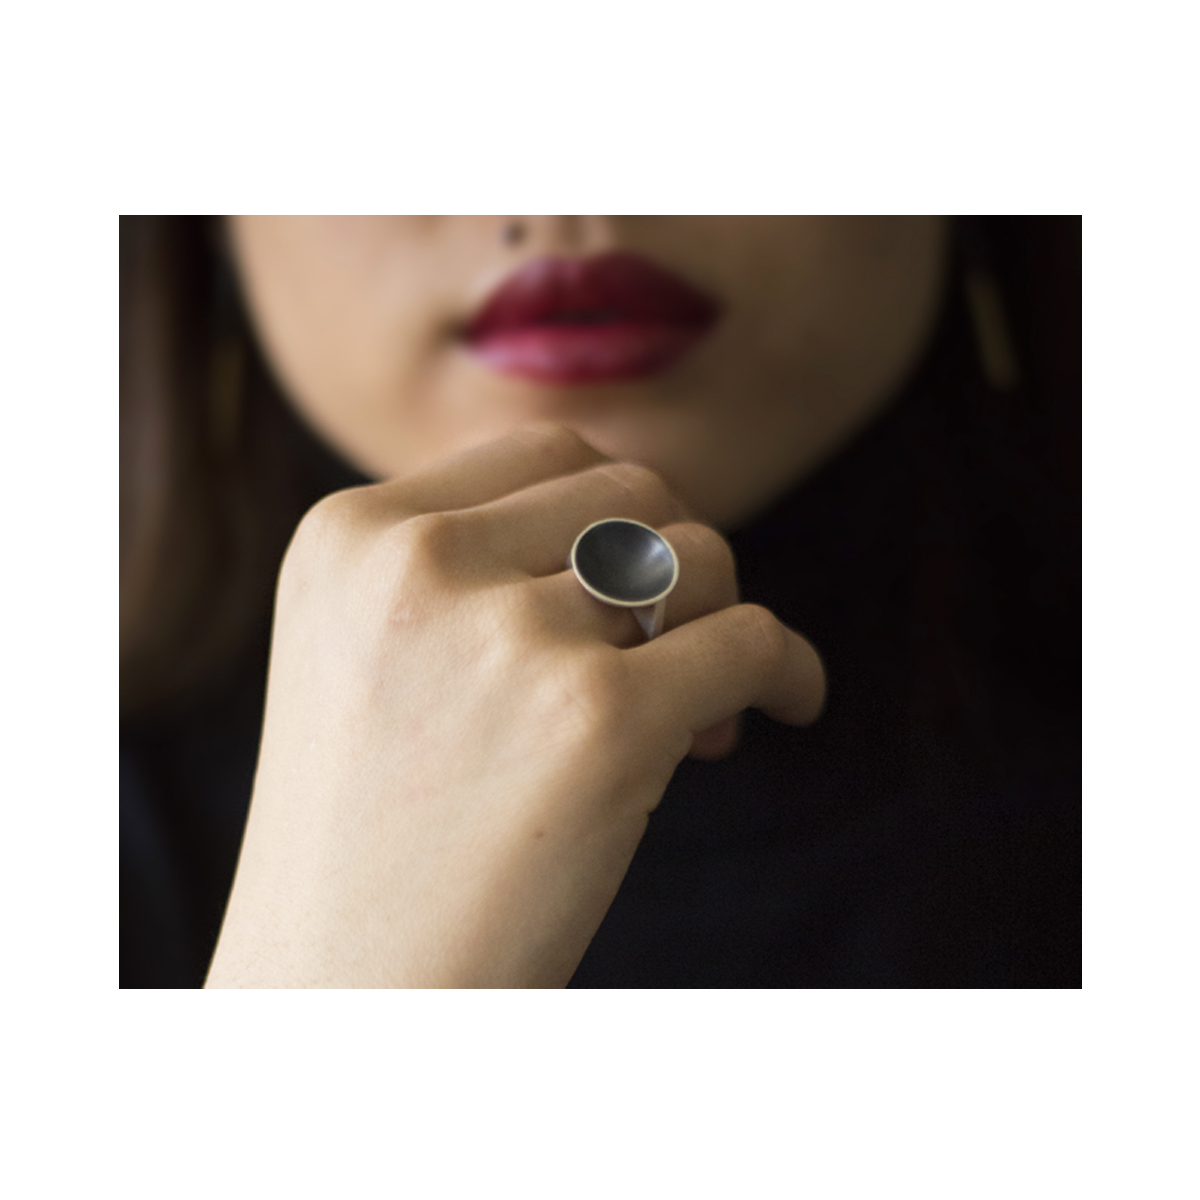 marta-alonso-joieria-dip-collection-ring.jpg